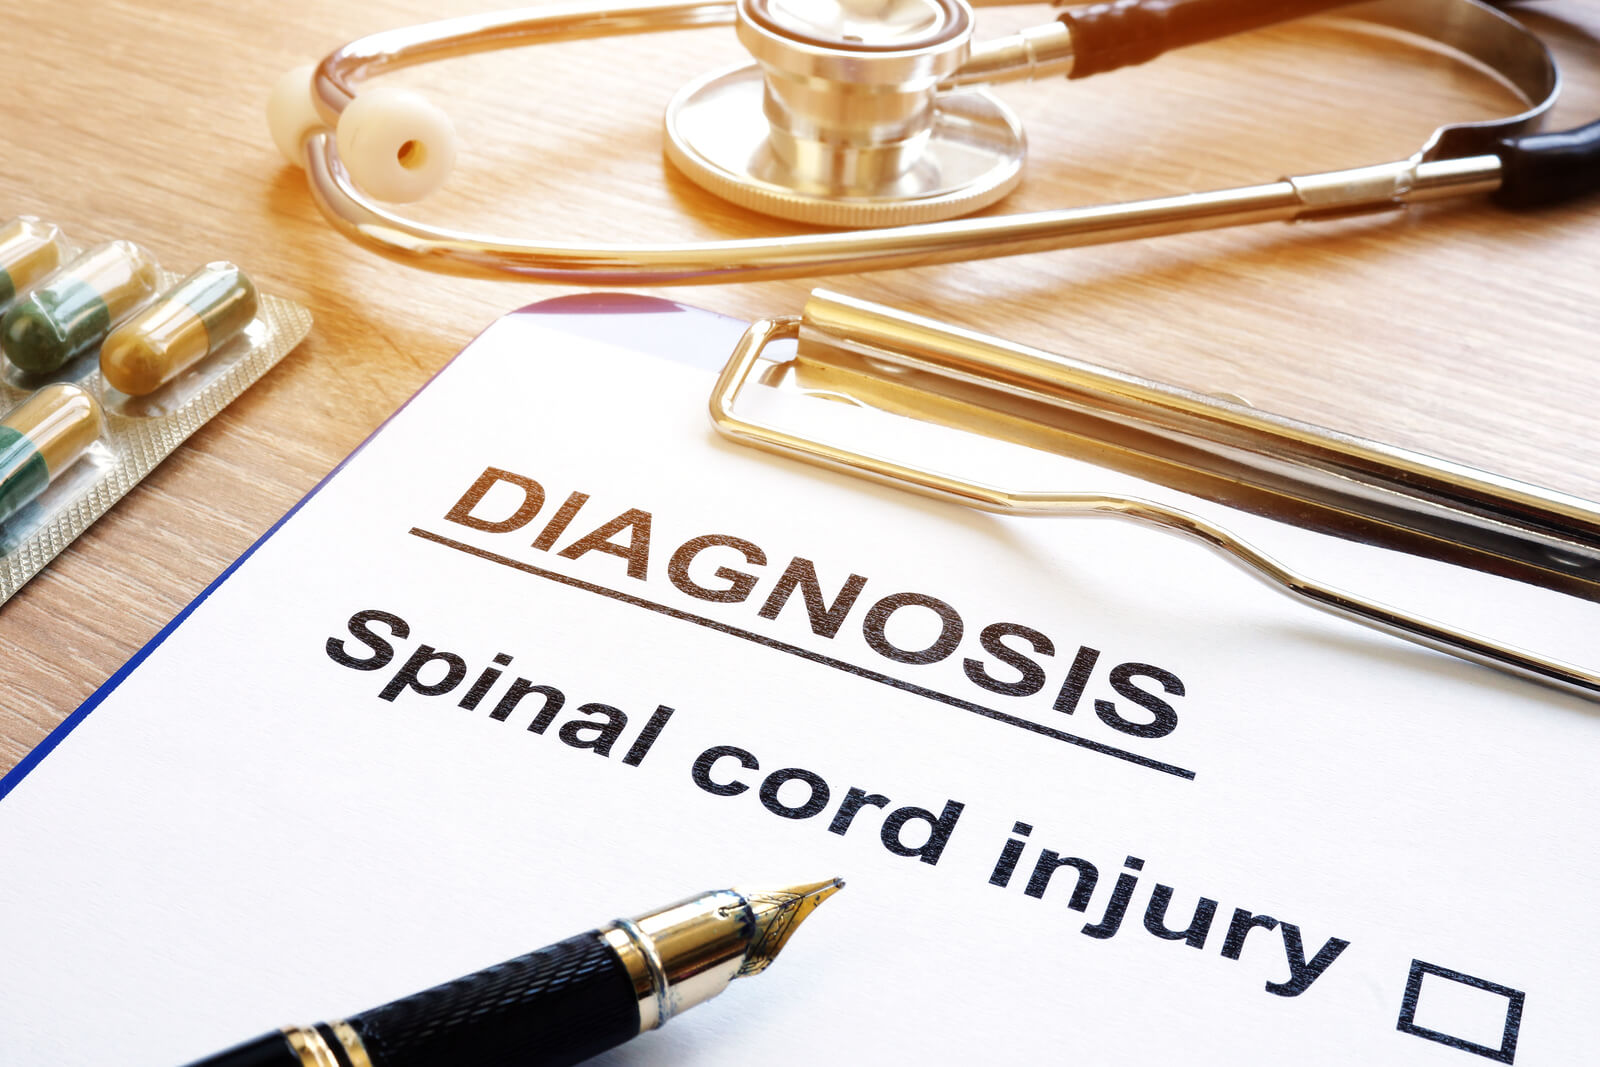 Spinal-Cord-Injury-Diagnosis-on-clipboard-with-medication